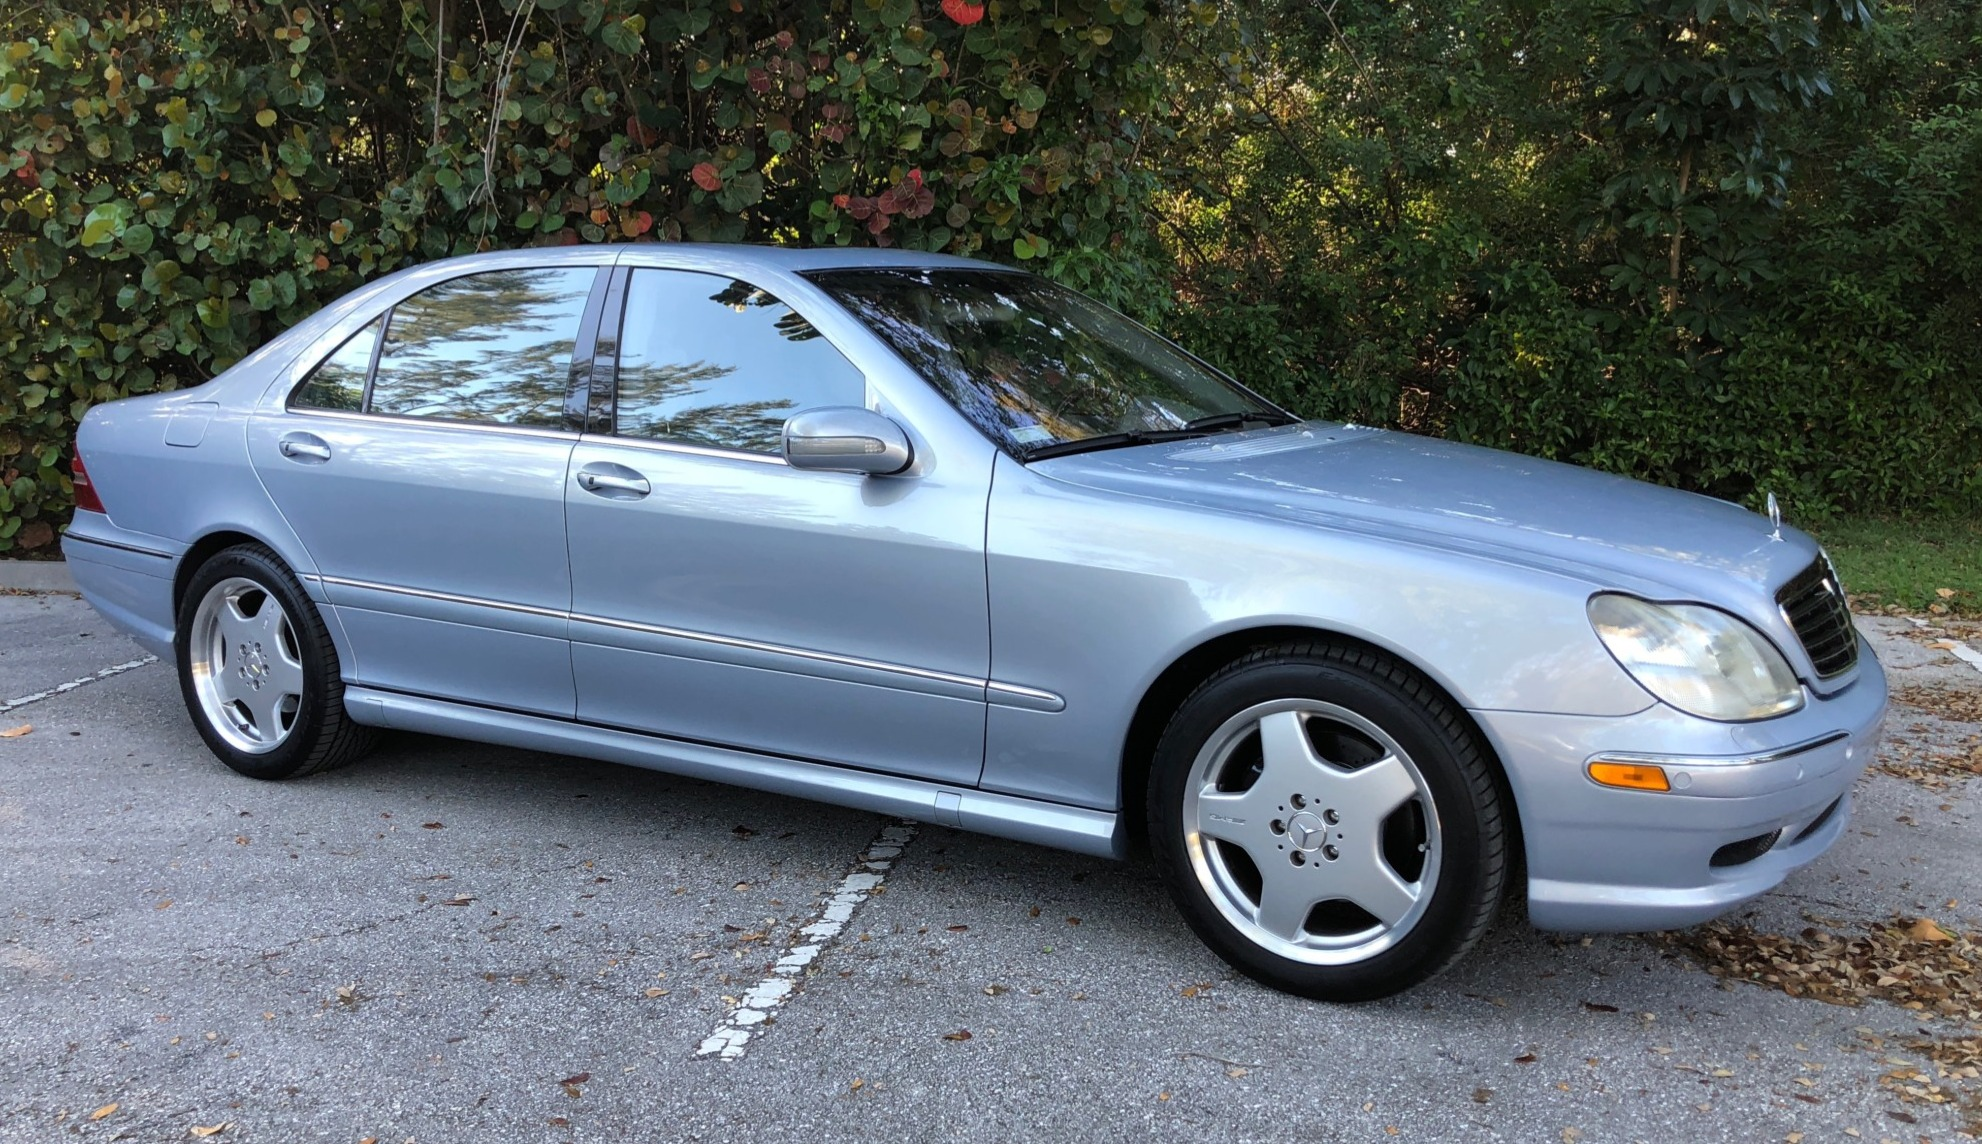 hight resolution of no reserve 37k mile 2002 mercedes benz s500 for sale on bat auctions sold for 10 000 on march 22 2019 lot 17 318 bring a trailer